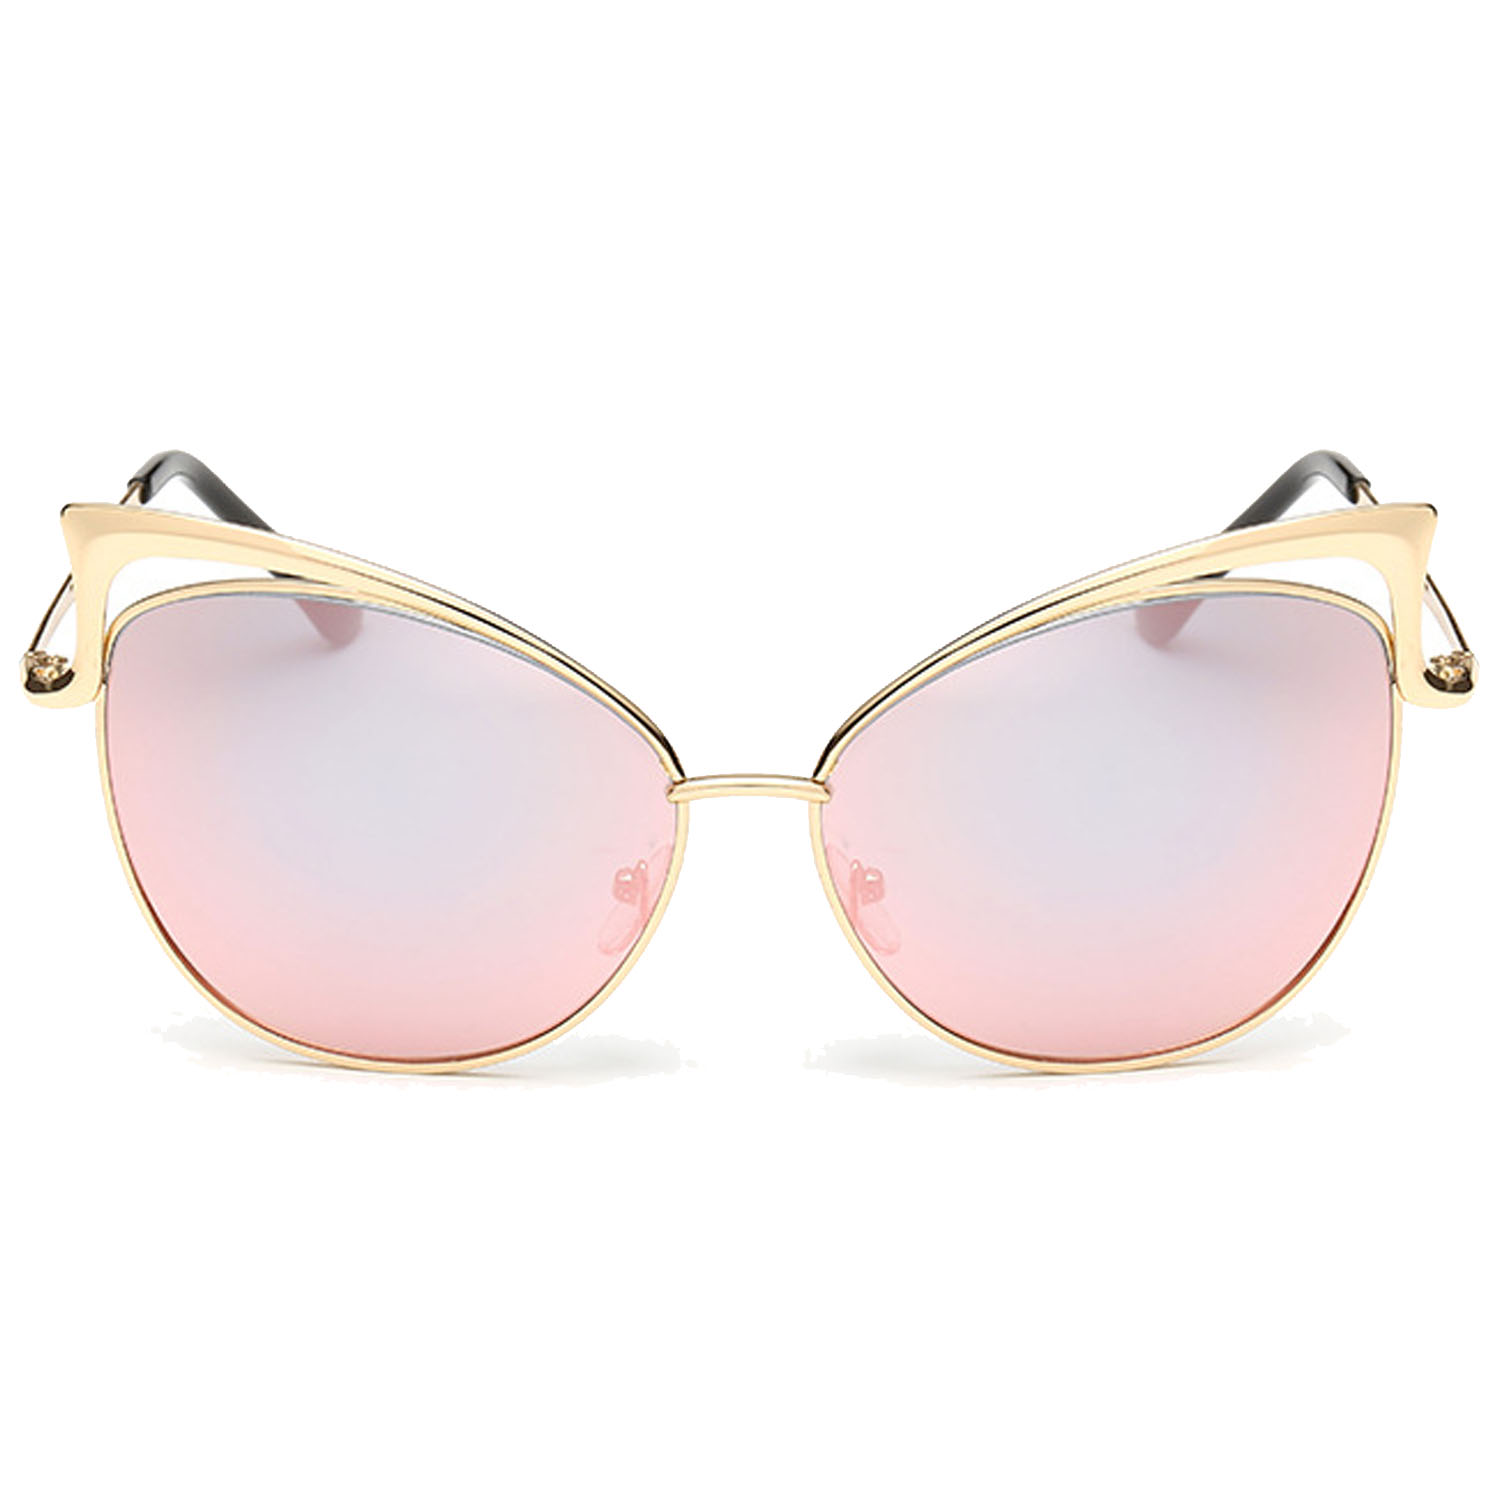 Women Fashion Metal Frame Cut Out Cat Eye Shape Sunglasses UV Protection  Comfortable Wearing for Holiday 971f7e8fb6